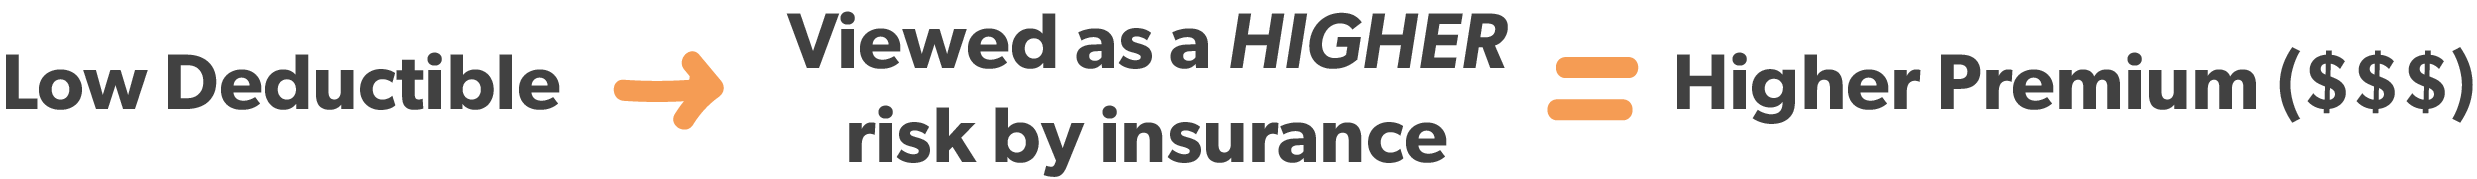 What a high premium means when it comes to your deductible